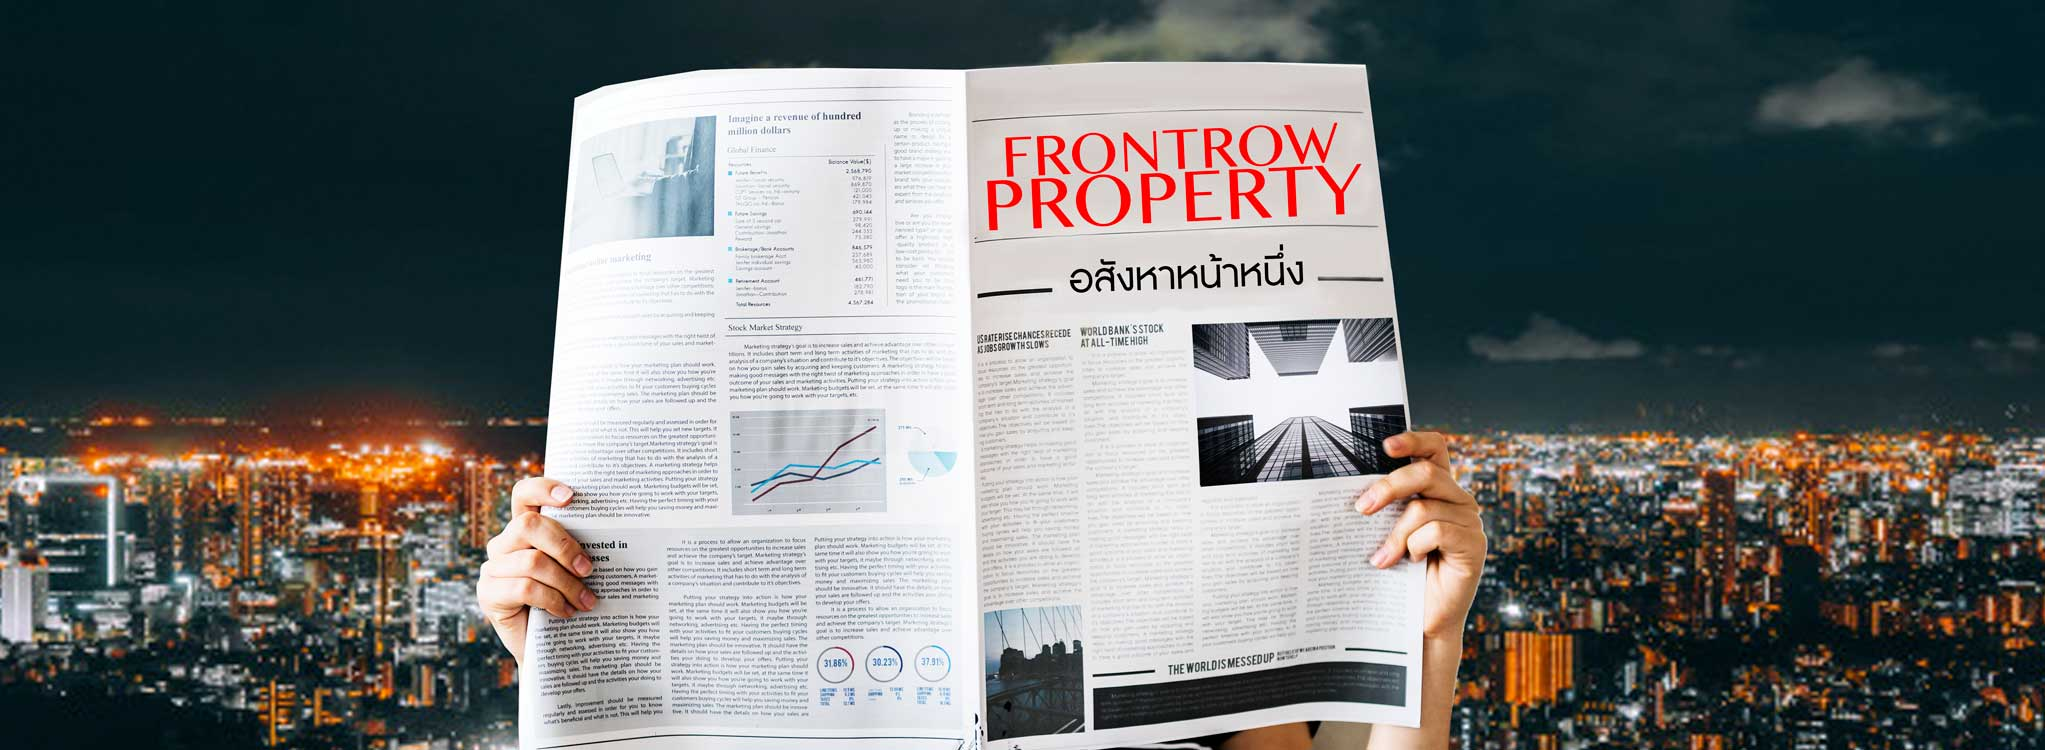 frontrow-property.com